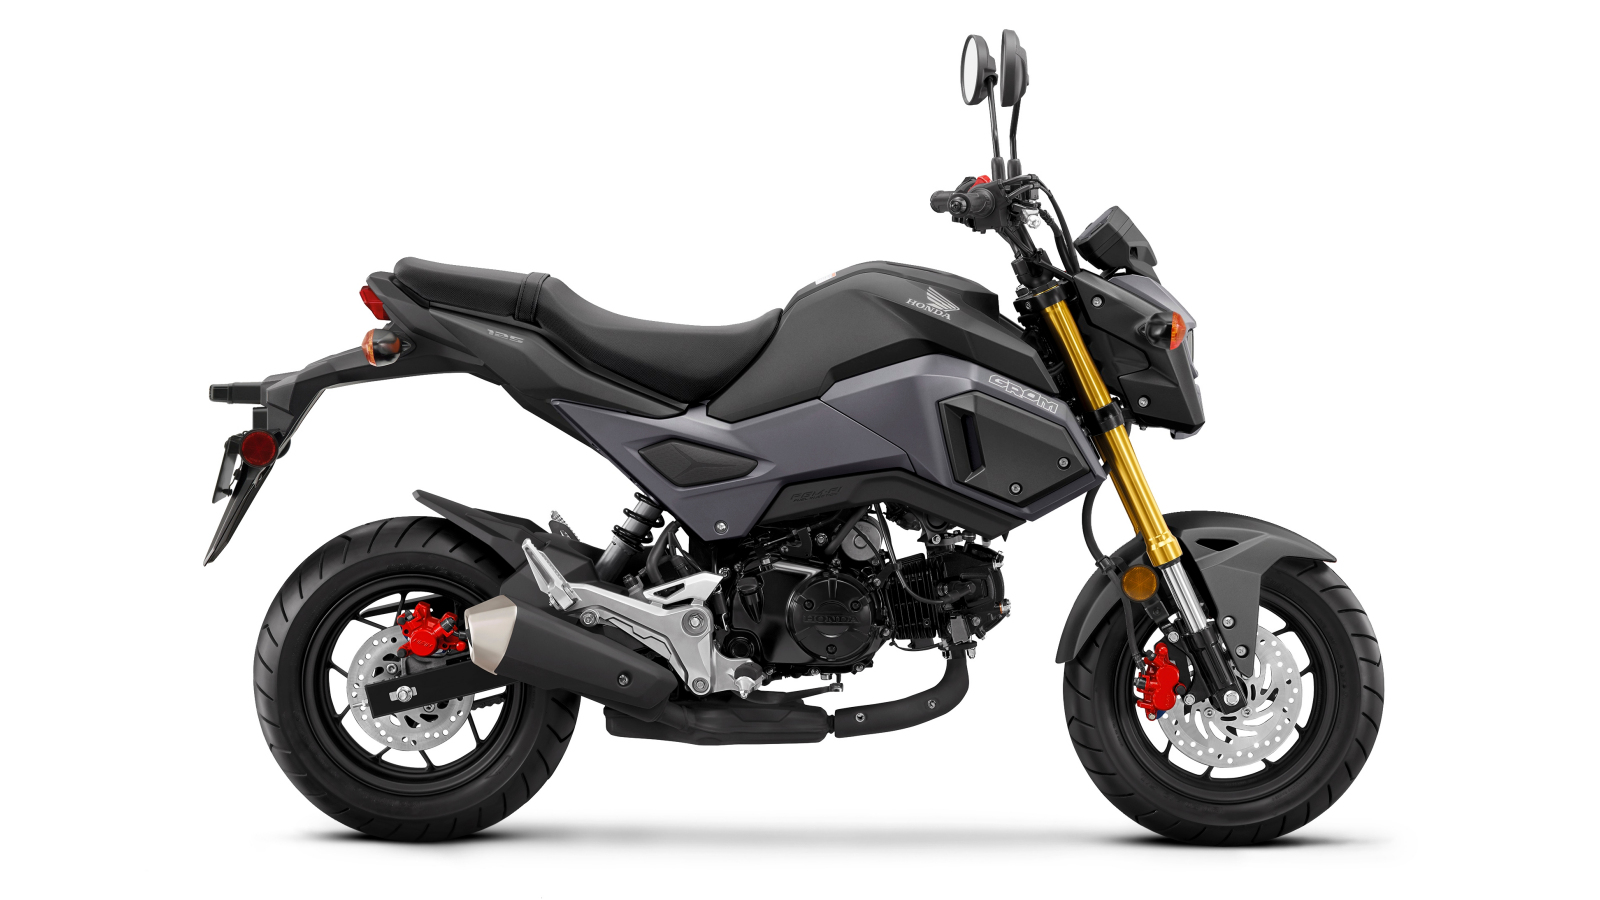 2017 - 2018 Honda Grom Review - Top Speed